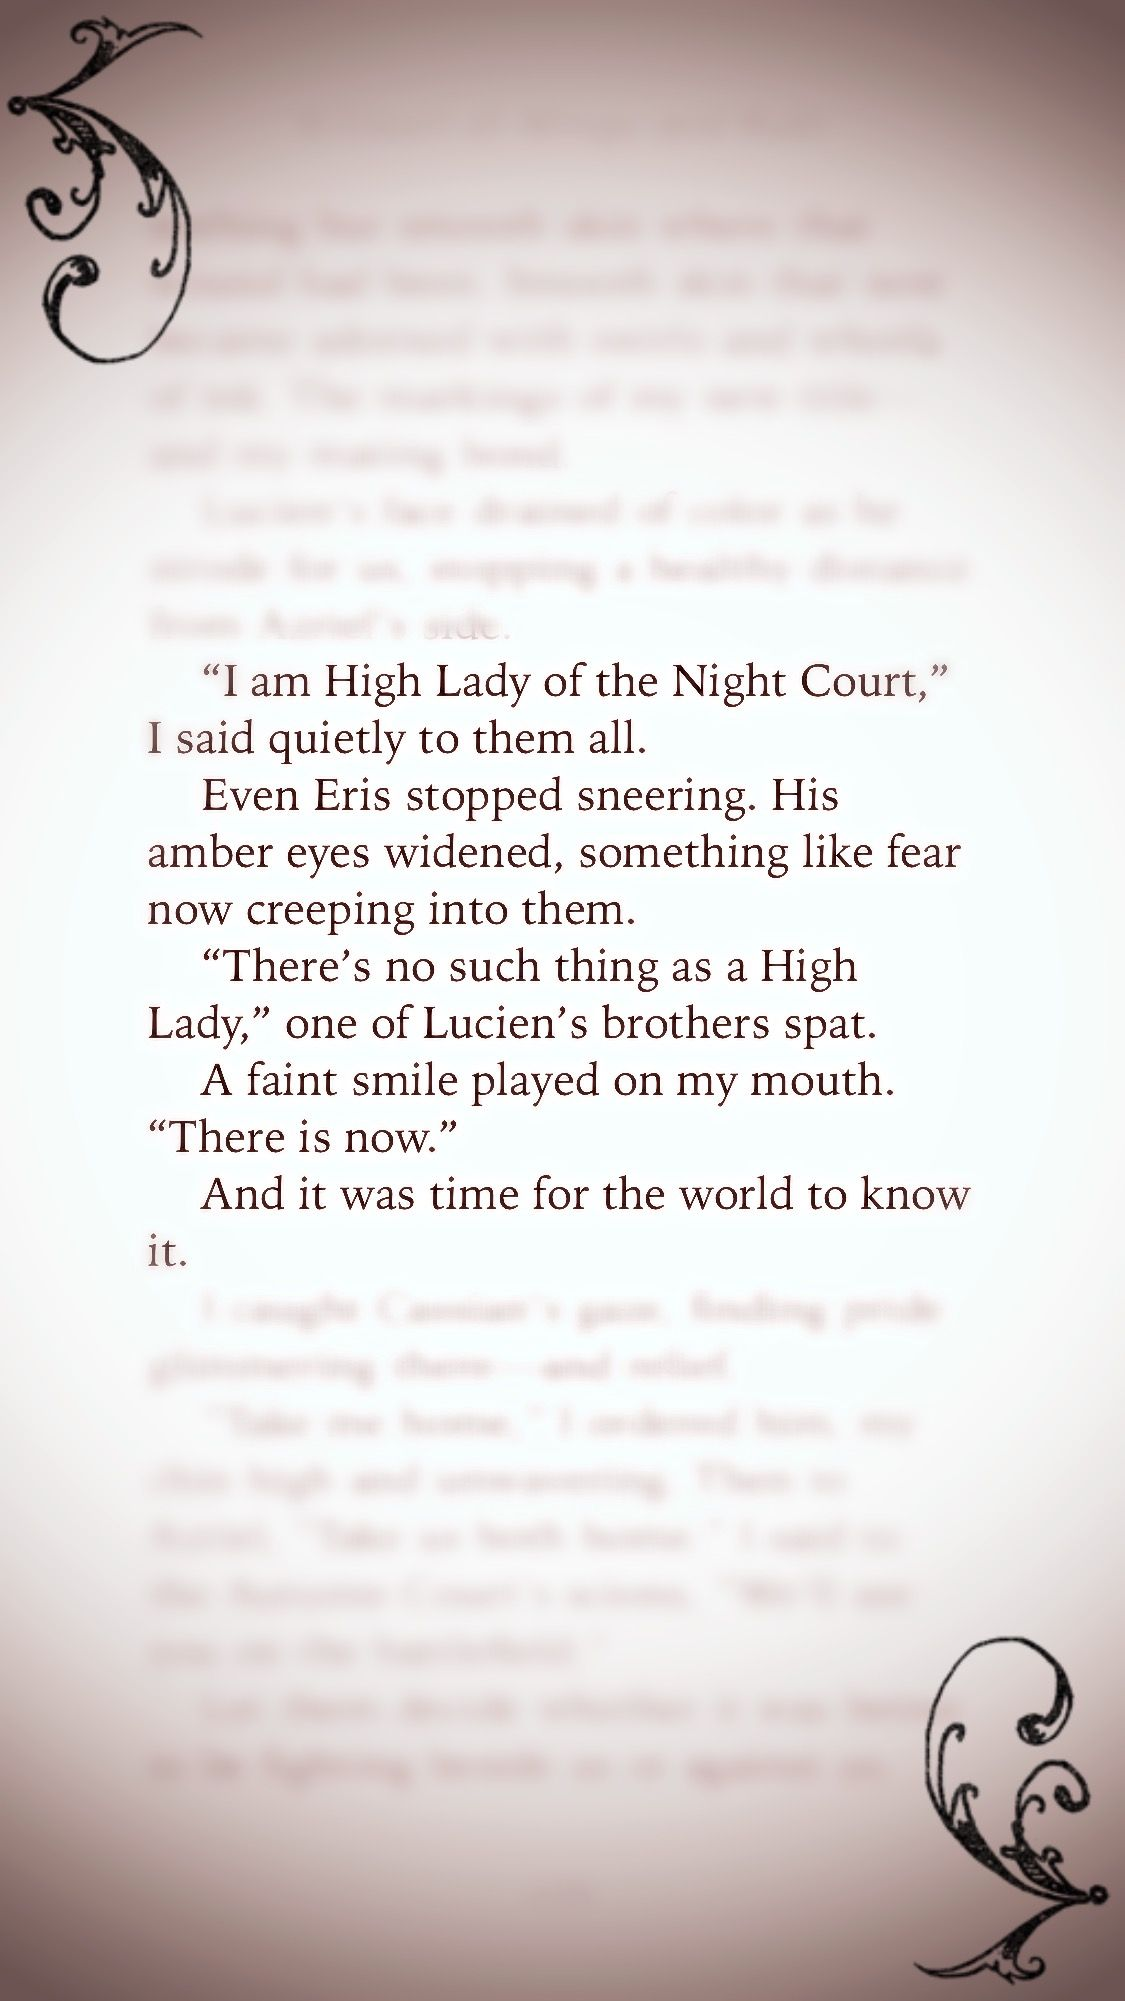 All Hail High Lady Of The Night Court Feyre Archeron A Court